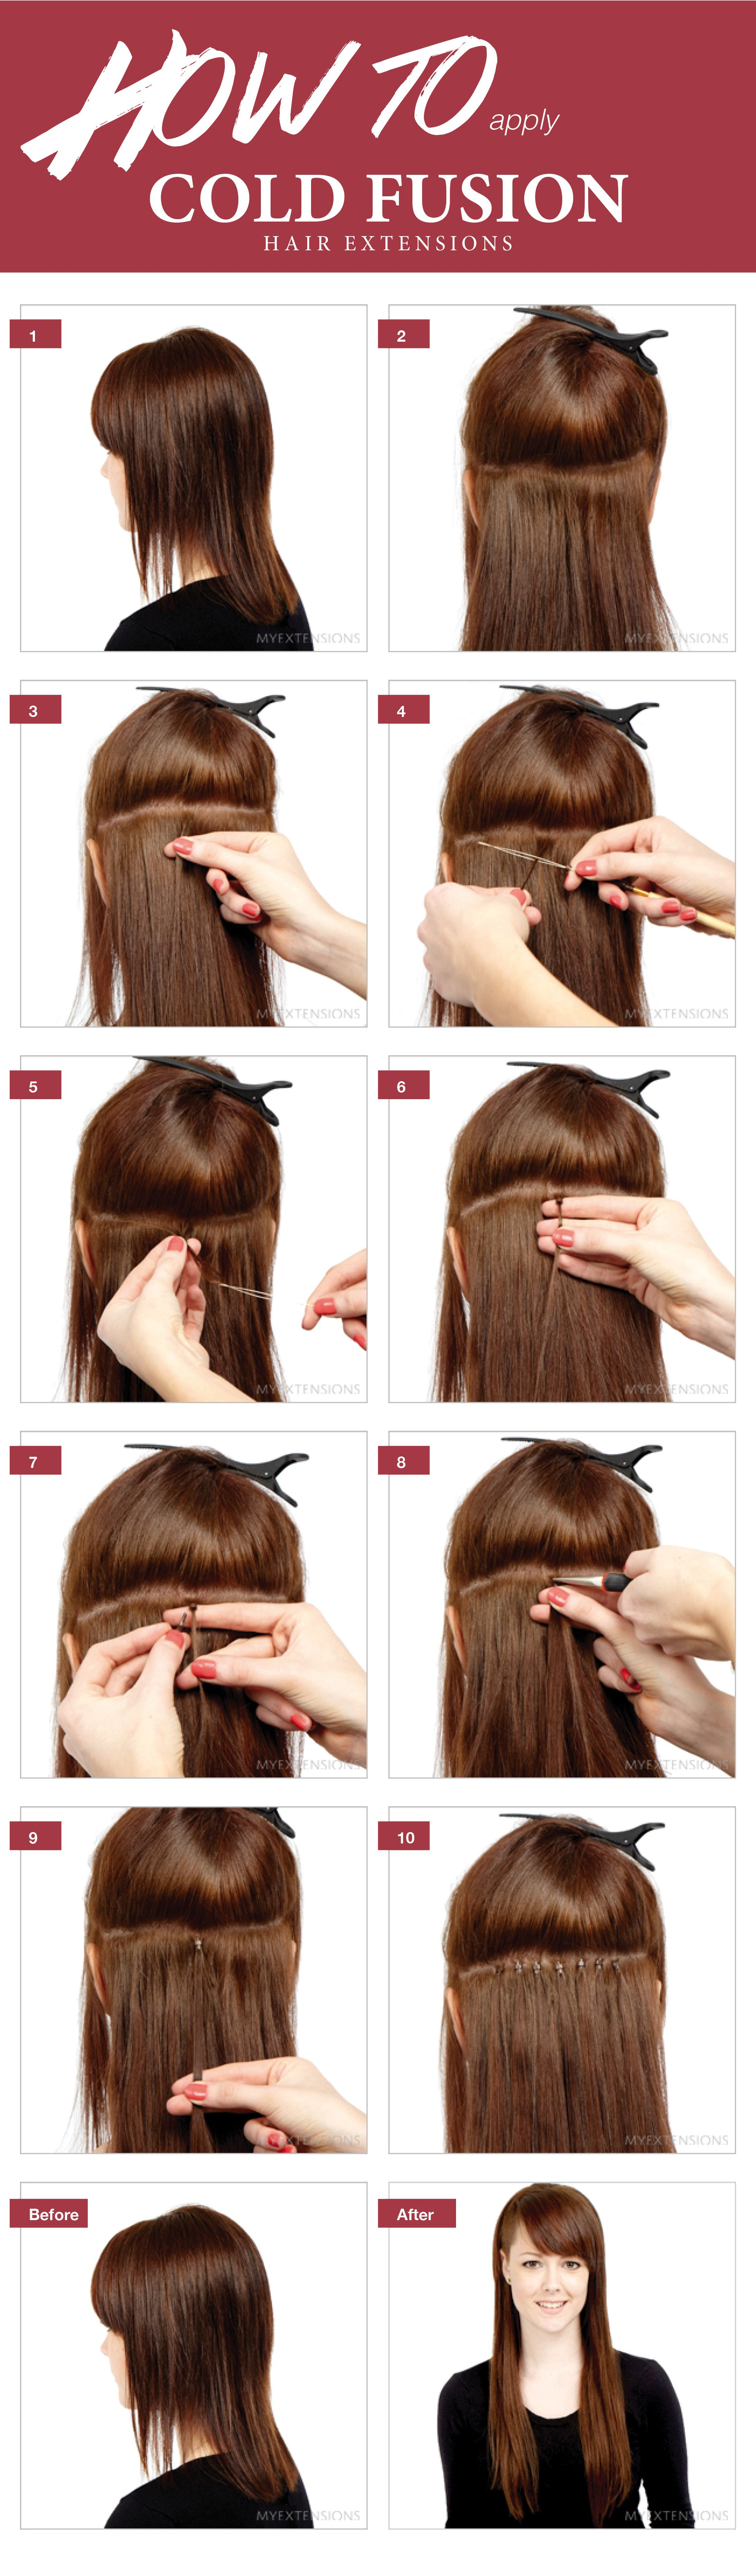 Step By Step Guide Sdan Pstter Du Cold Fusion Hair Extensions